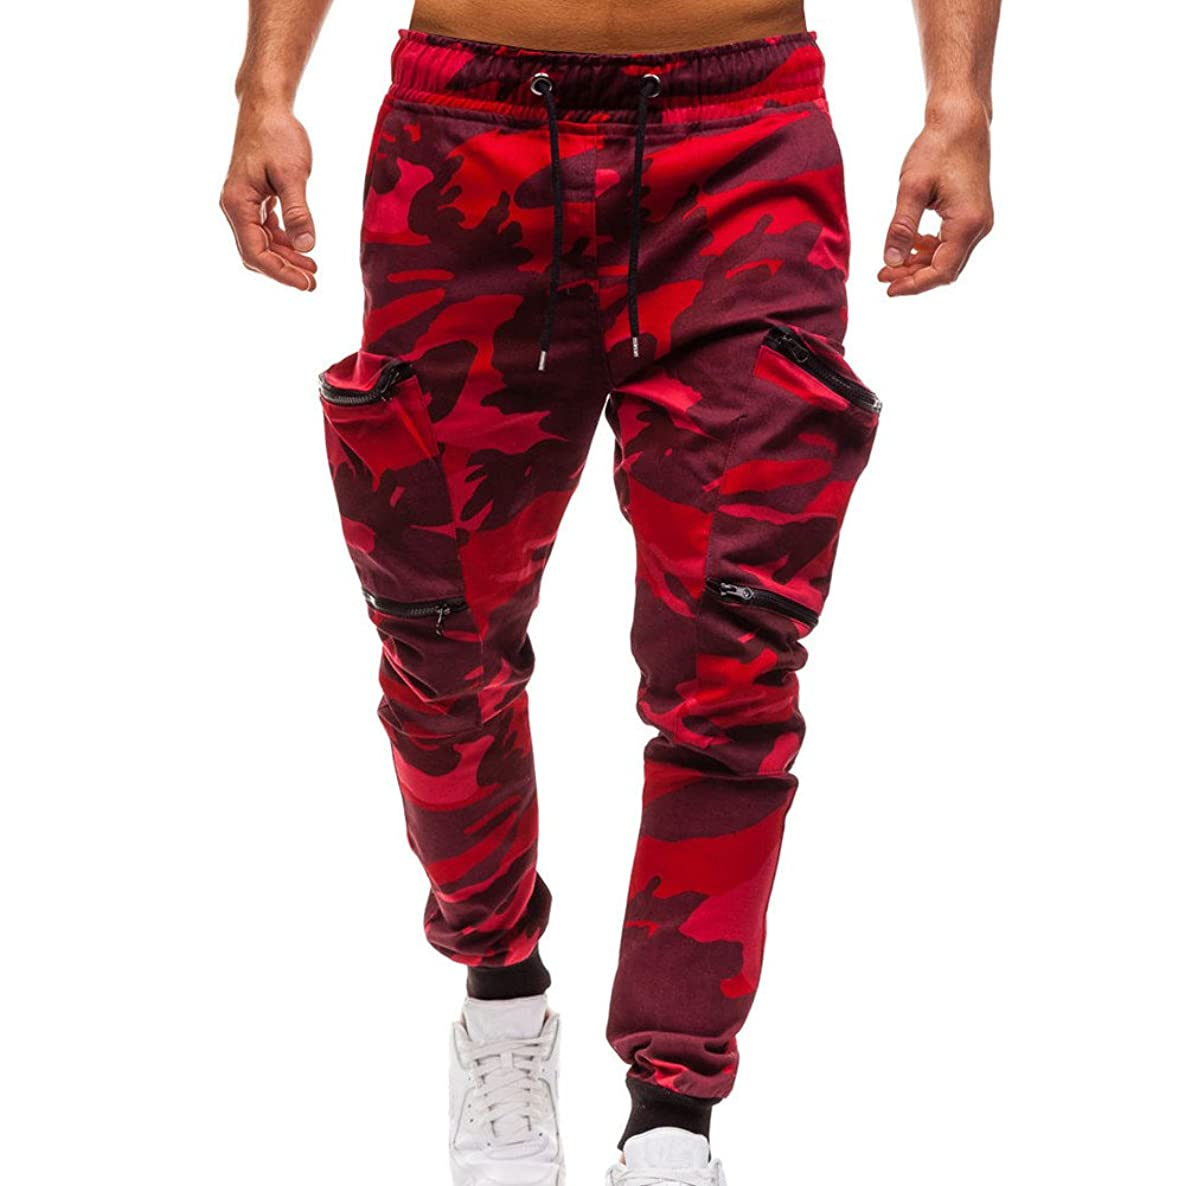 Mens Camo Jogging Pants,Drawstring Classic Zipper Pockets Sport Sweat Pants